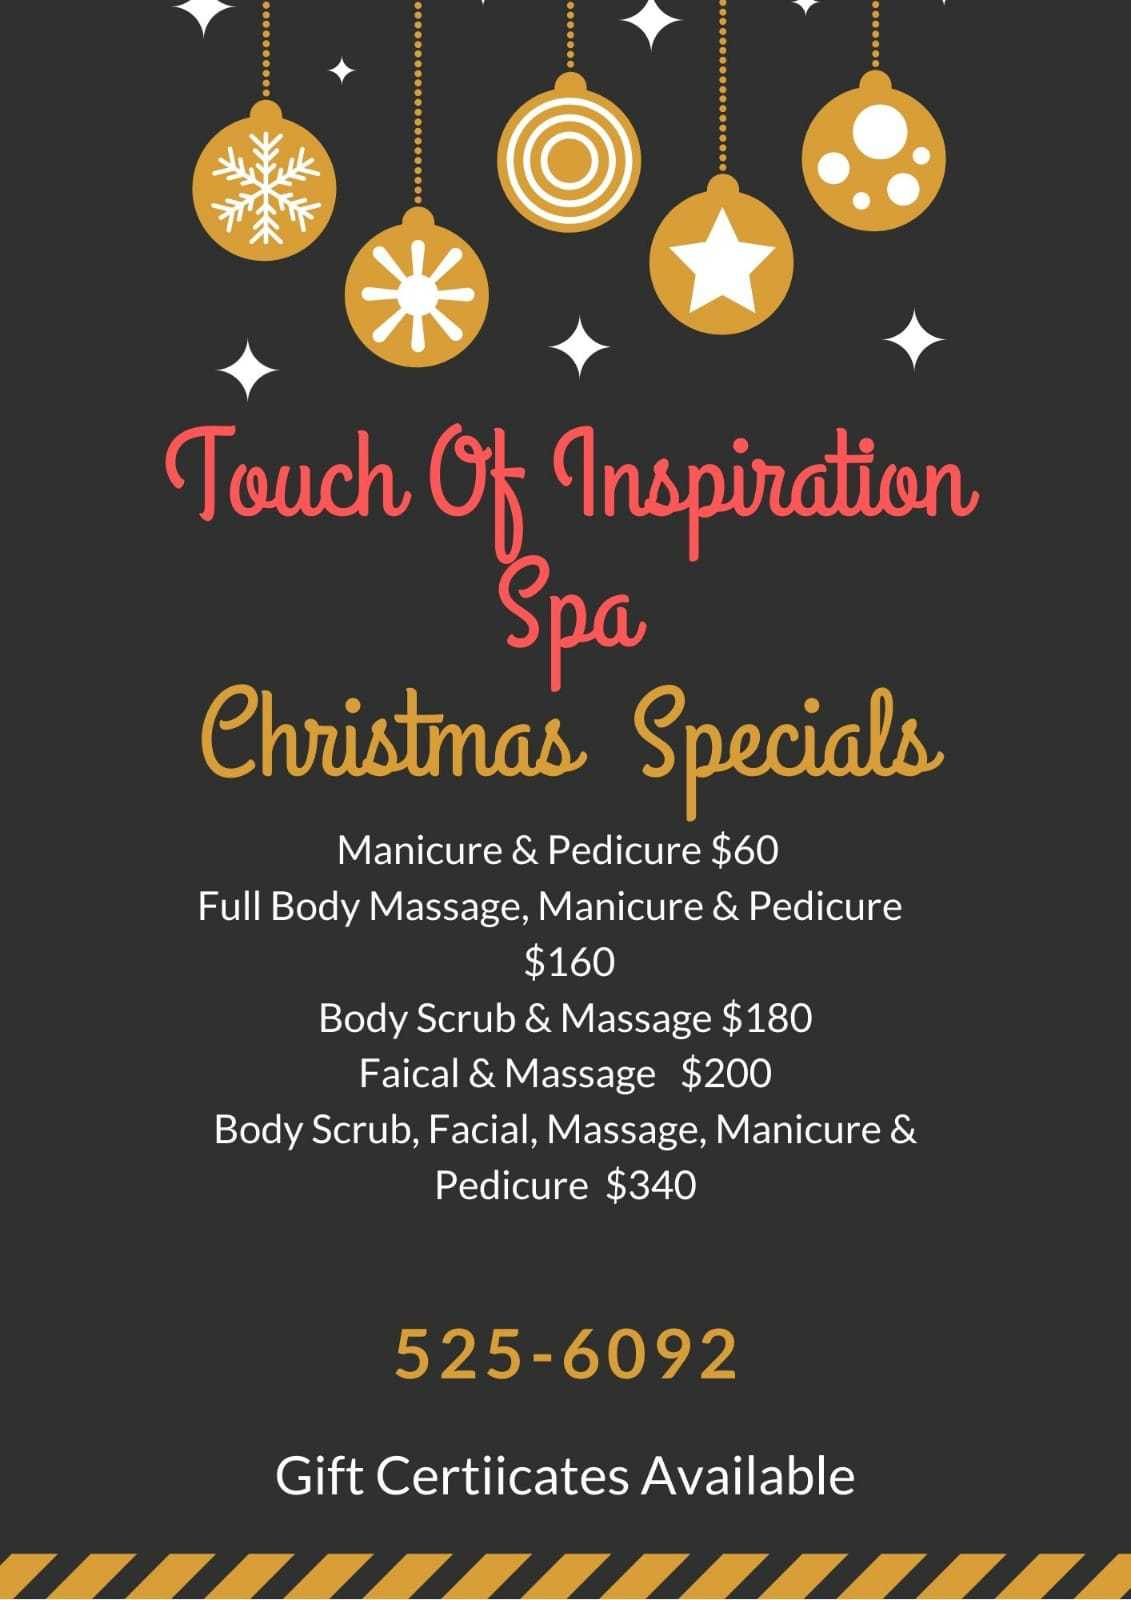 Touch of Inspiration Spa